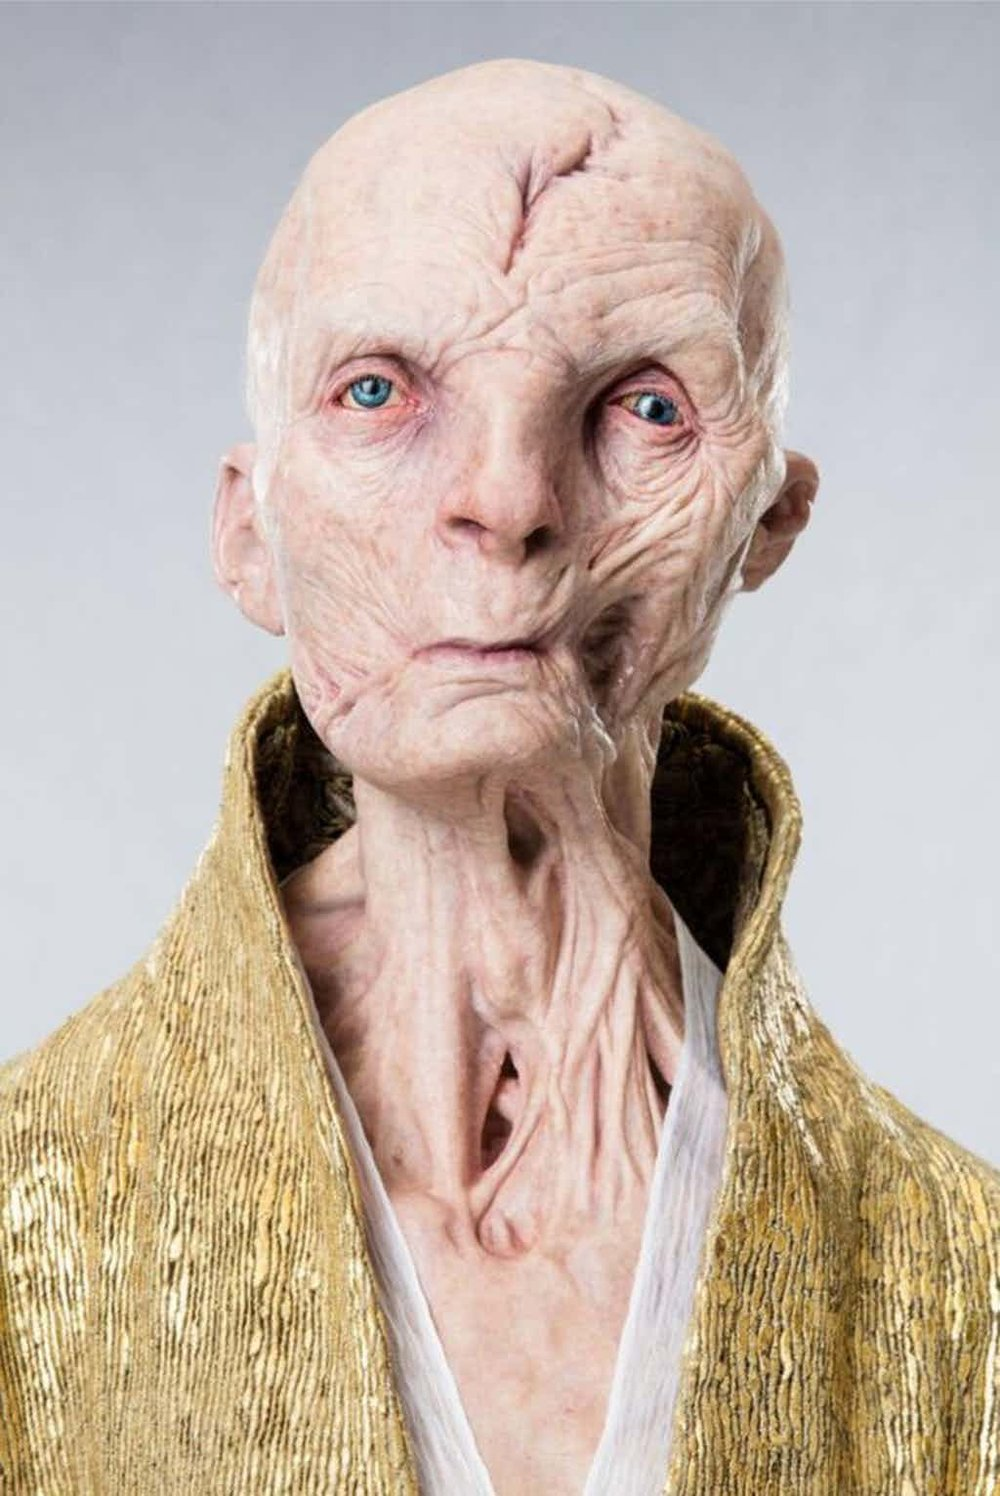 Star-Wars-The-Last-Jedi-Supreme-Leader-Snoke.jpg